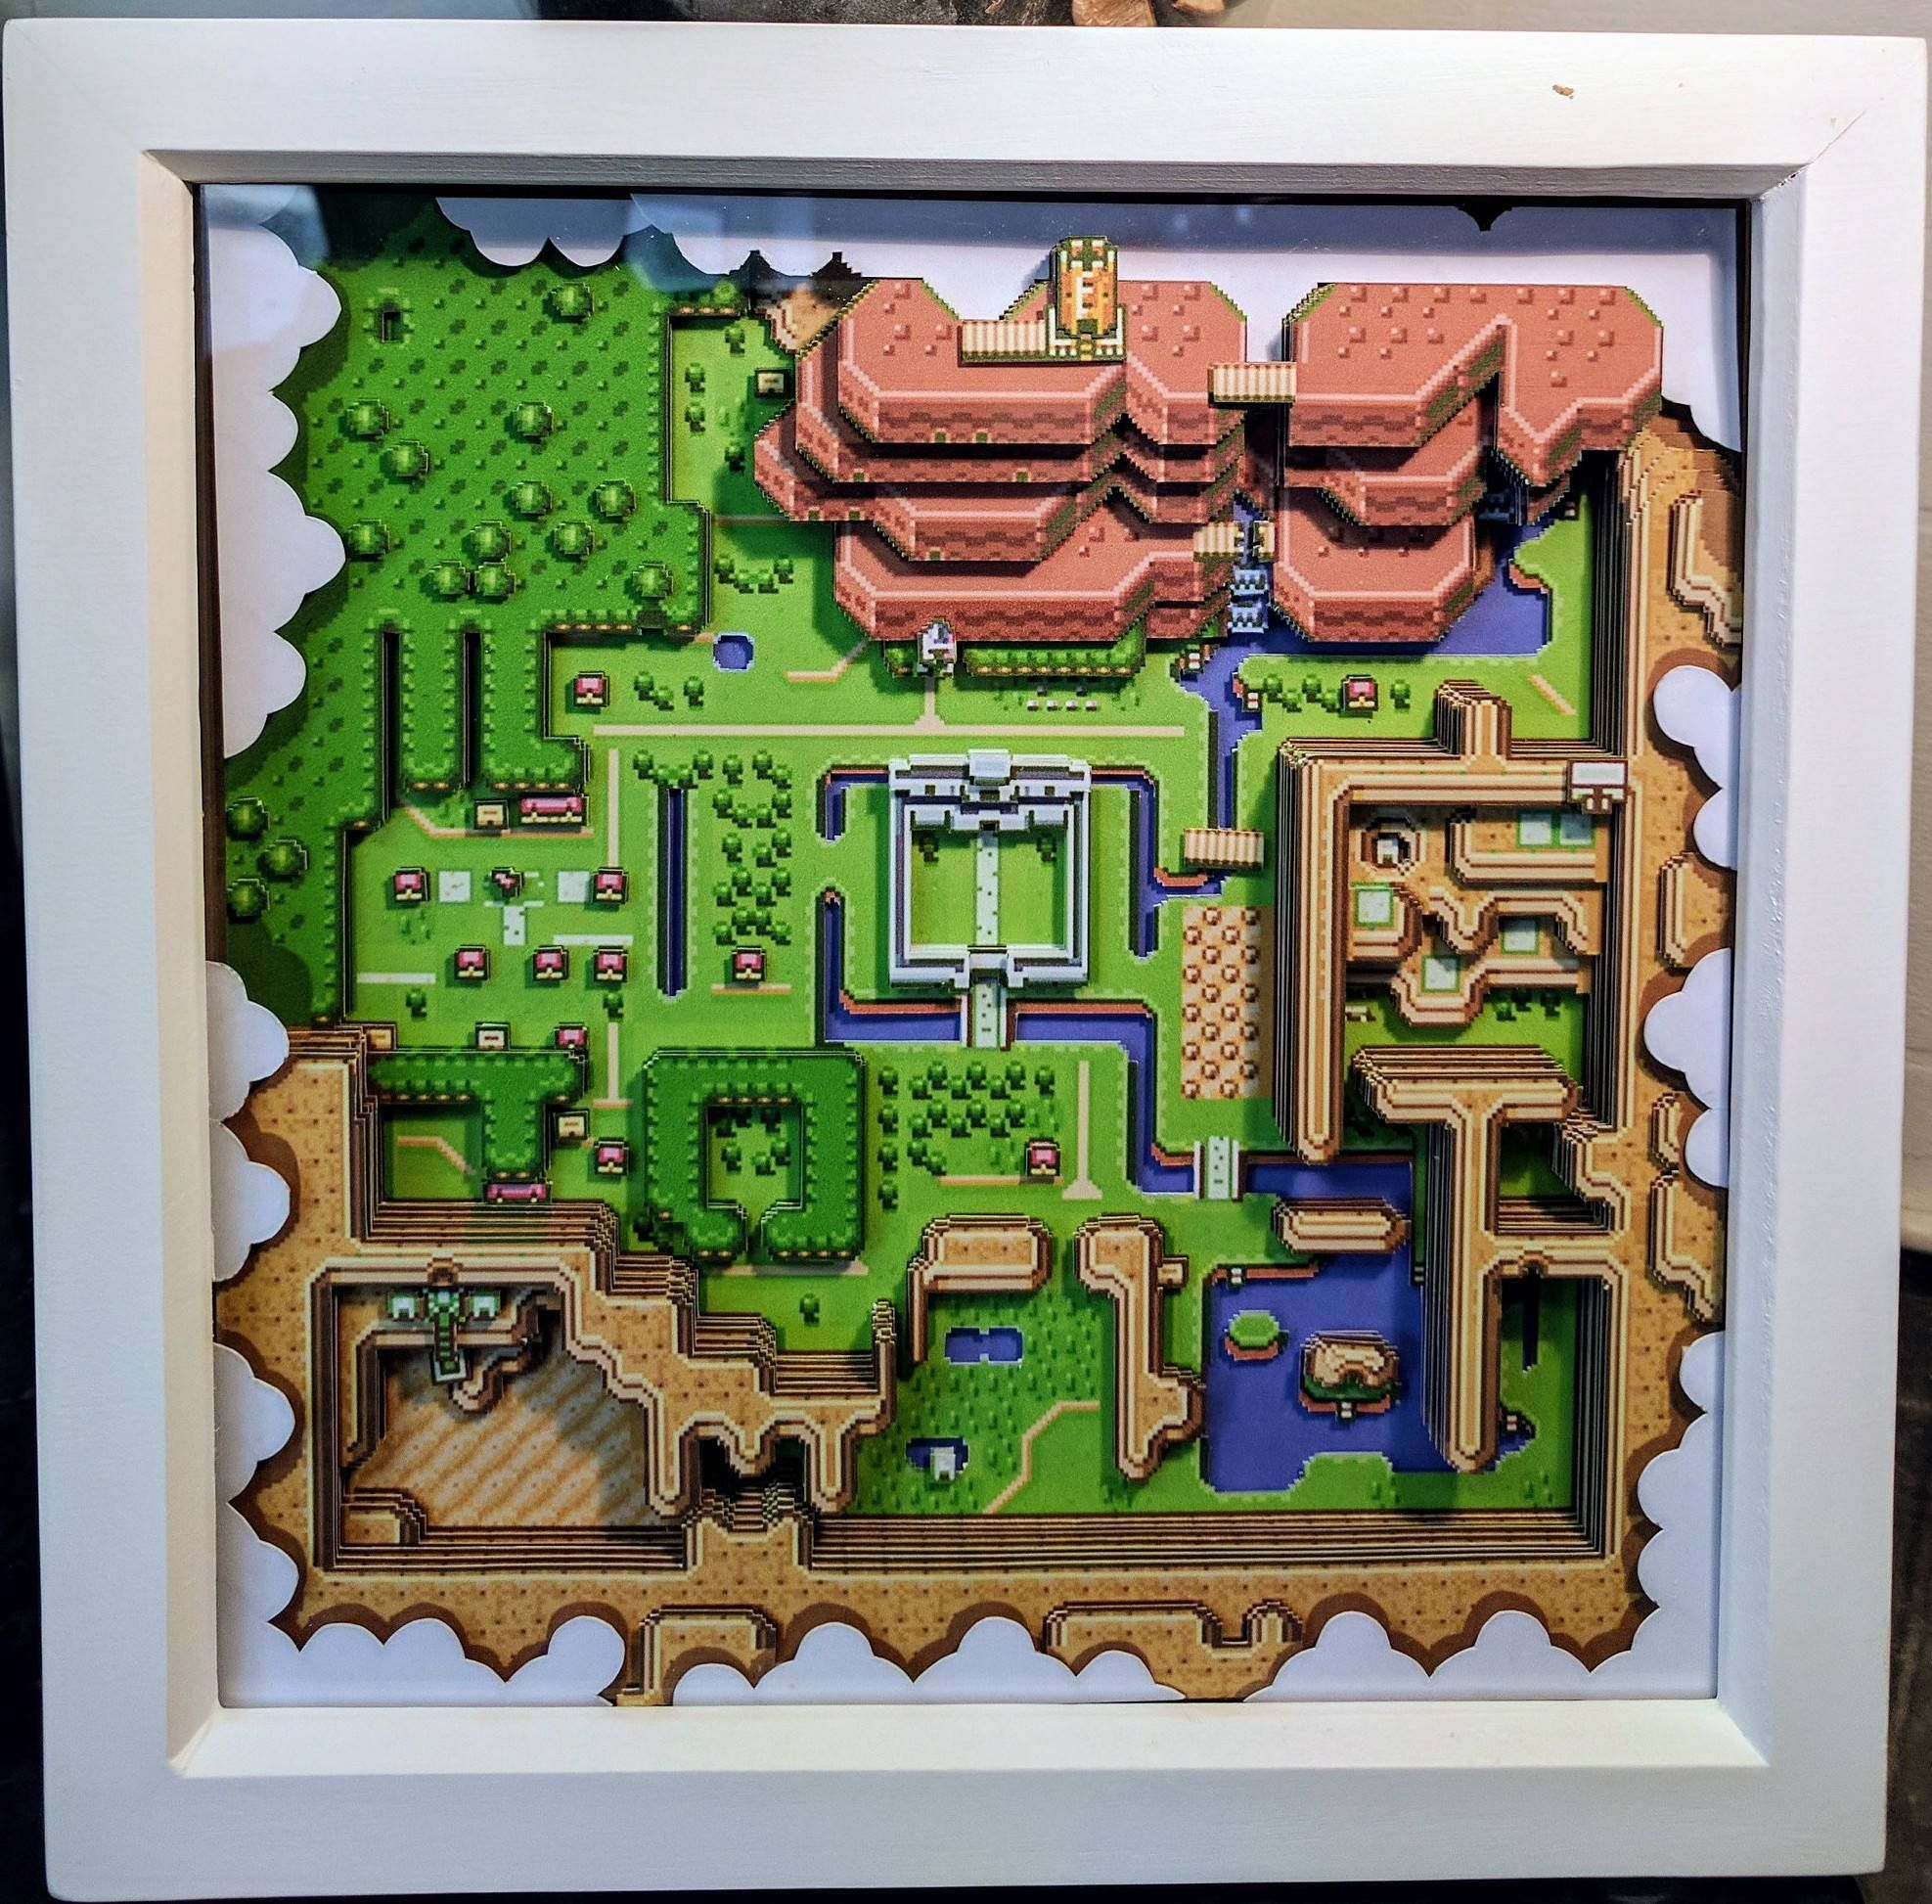 Legend Of Zelda A Link To The Past Light Map 3d Etsy Gaming Wall Art Shadow Box Zelda Map Ideas for zelda link to past map